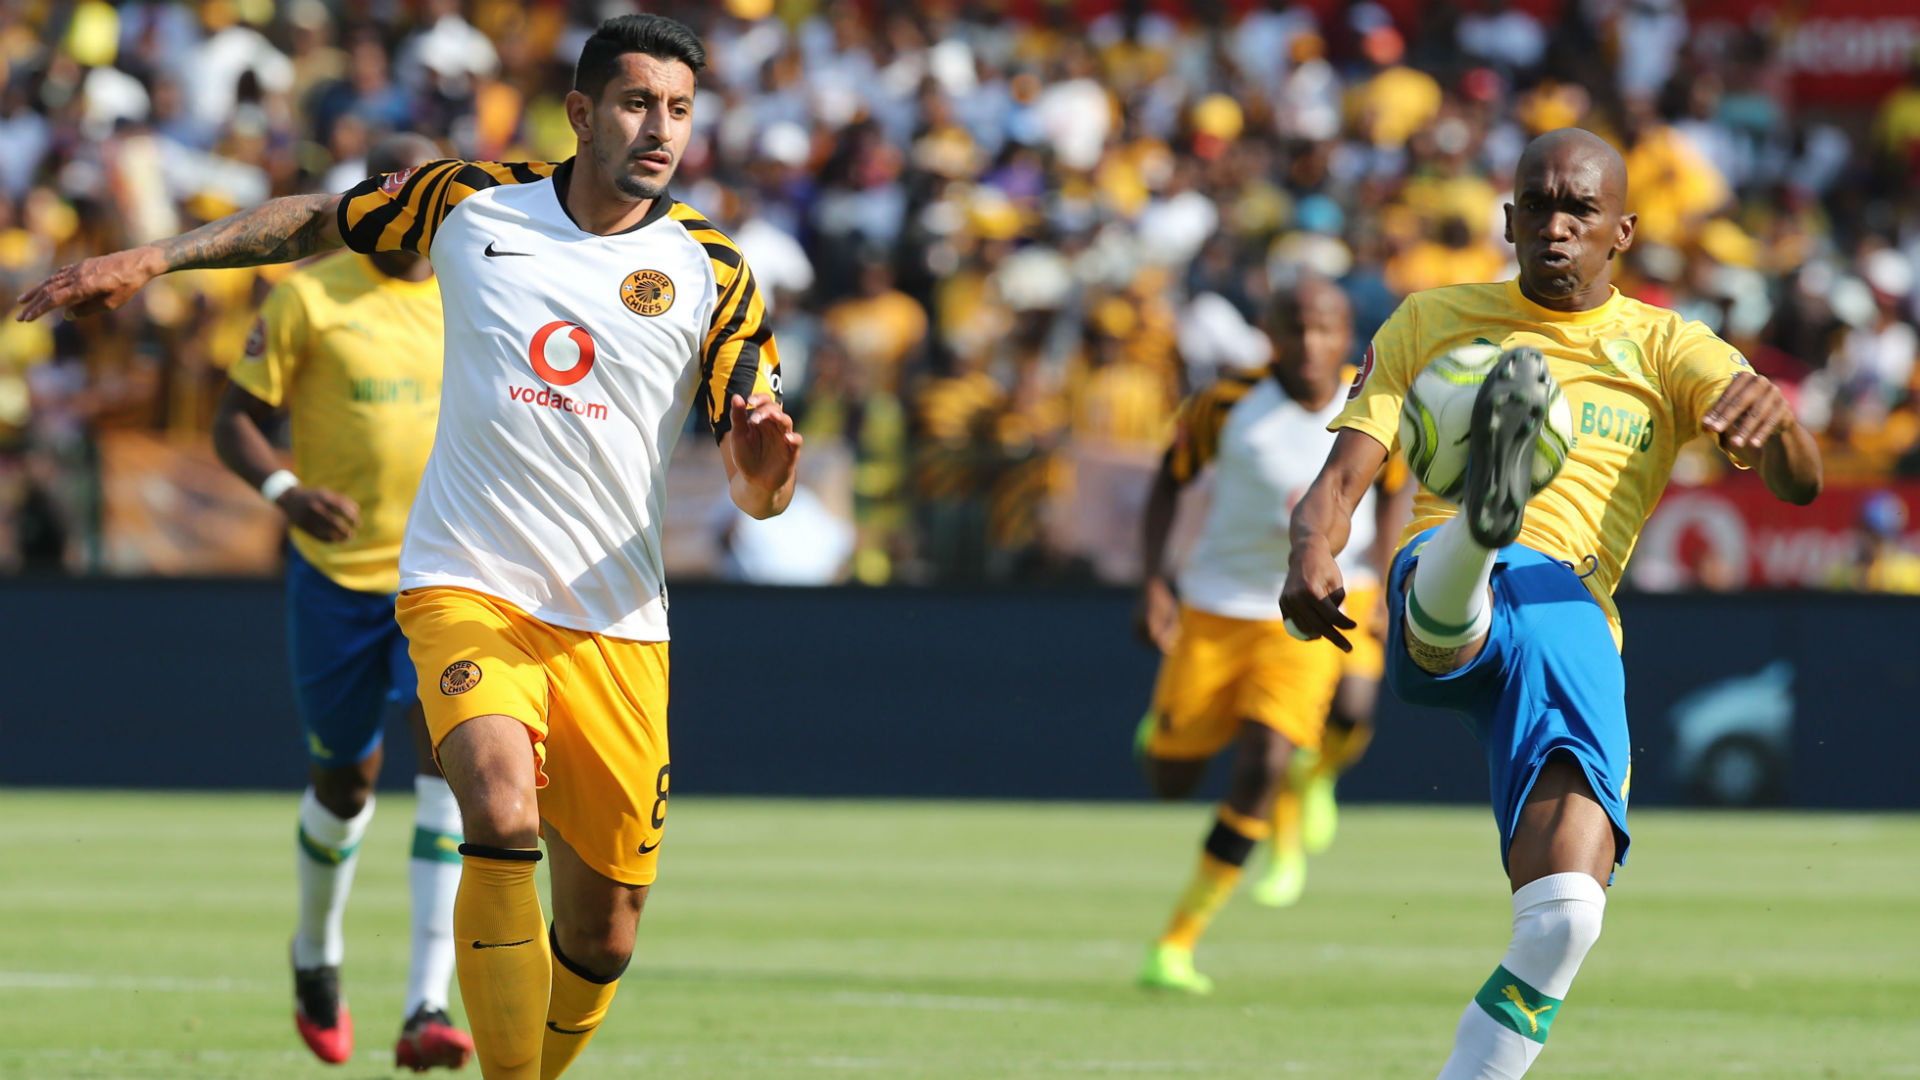 Mamelodi Sundowns Vs Kaizer Chiefs The Best And Worst Performers Goal Com